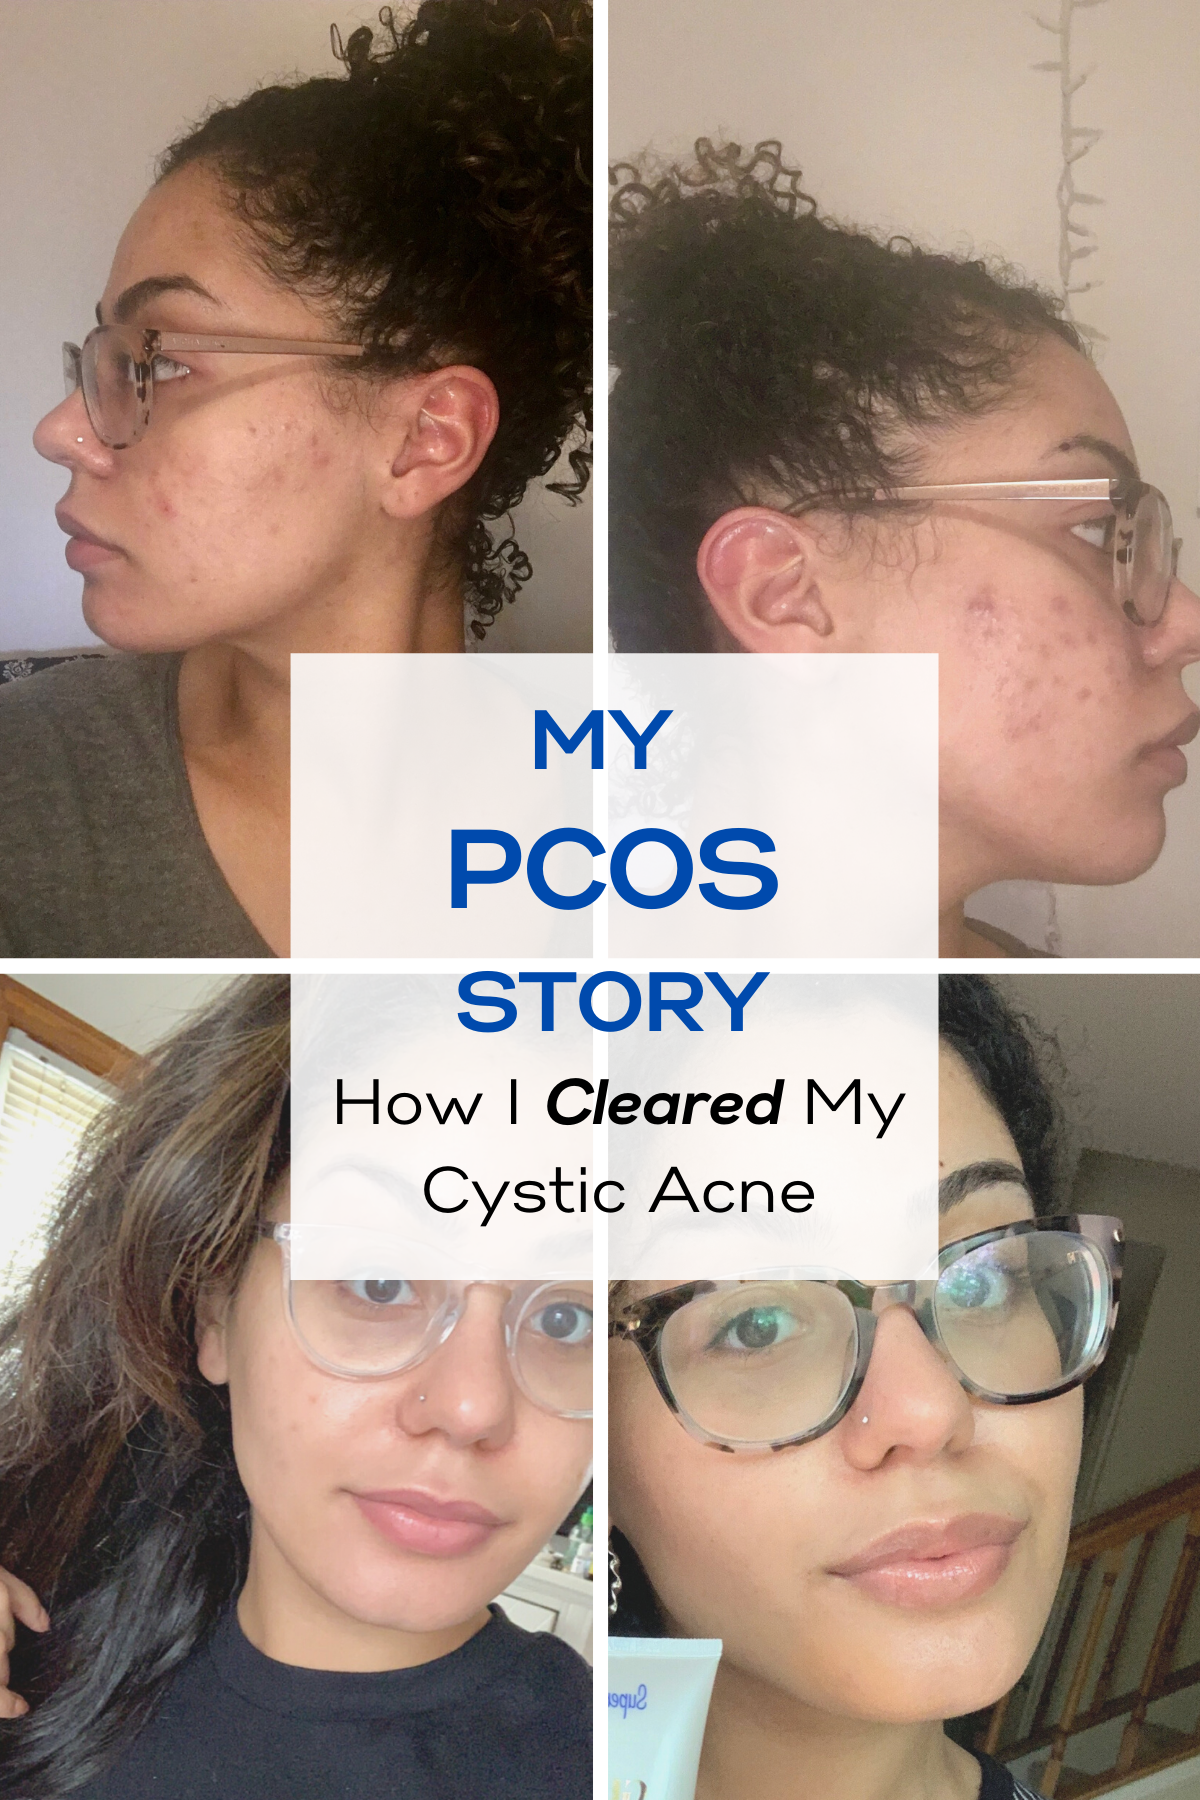 My Pcos Story Cystic Acne Acne Vulgaris Treatment Treating Cystic Acne